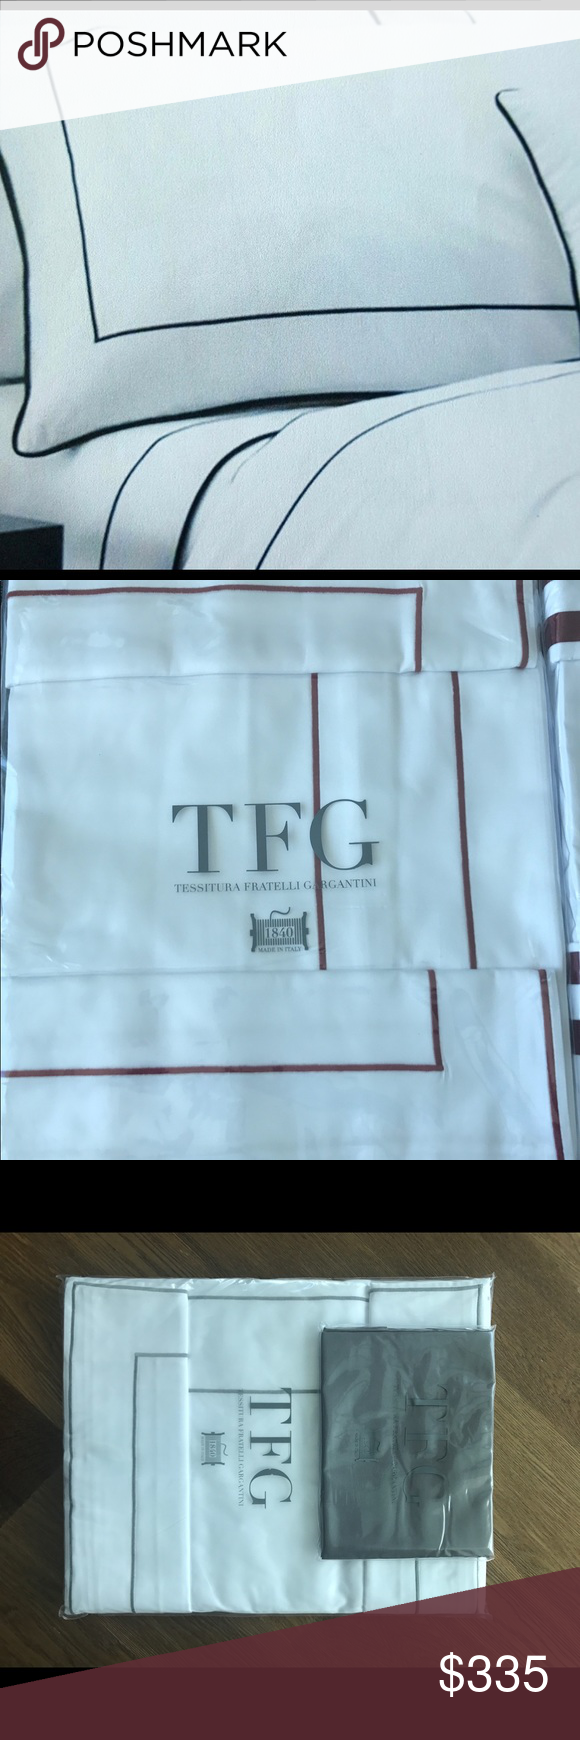 Linens made  in Italy 100 % cotton saten 300 TC Set Milano Collection 1 Fitted 1 Duvet 2 shams tfg Italy Other